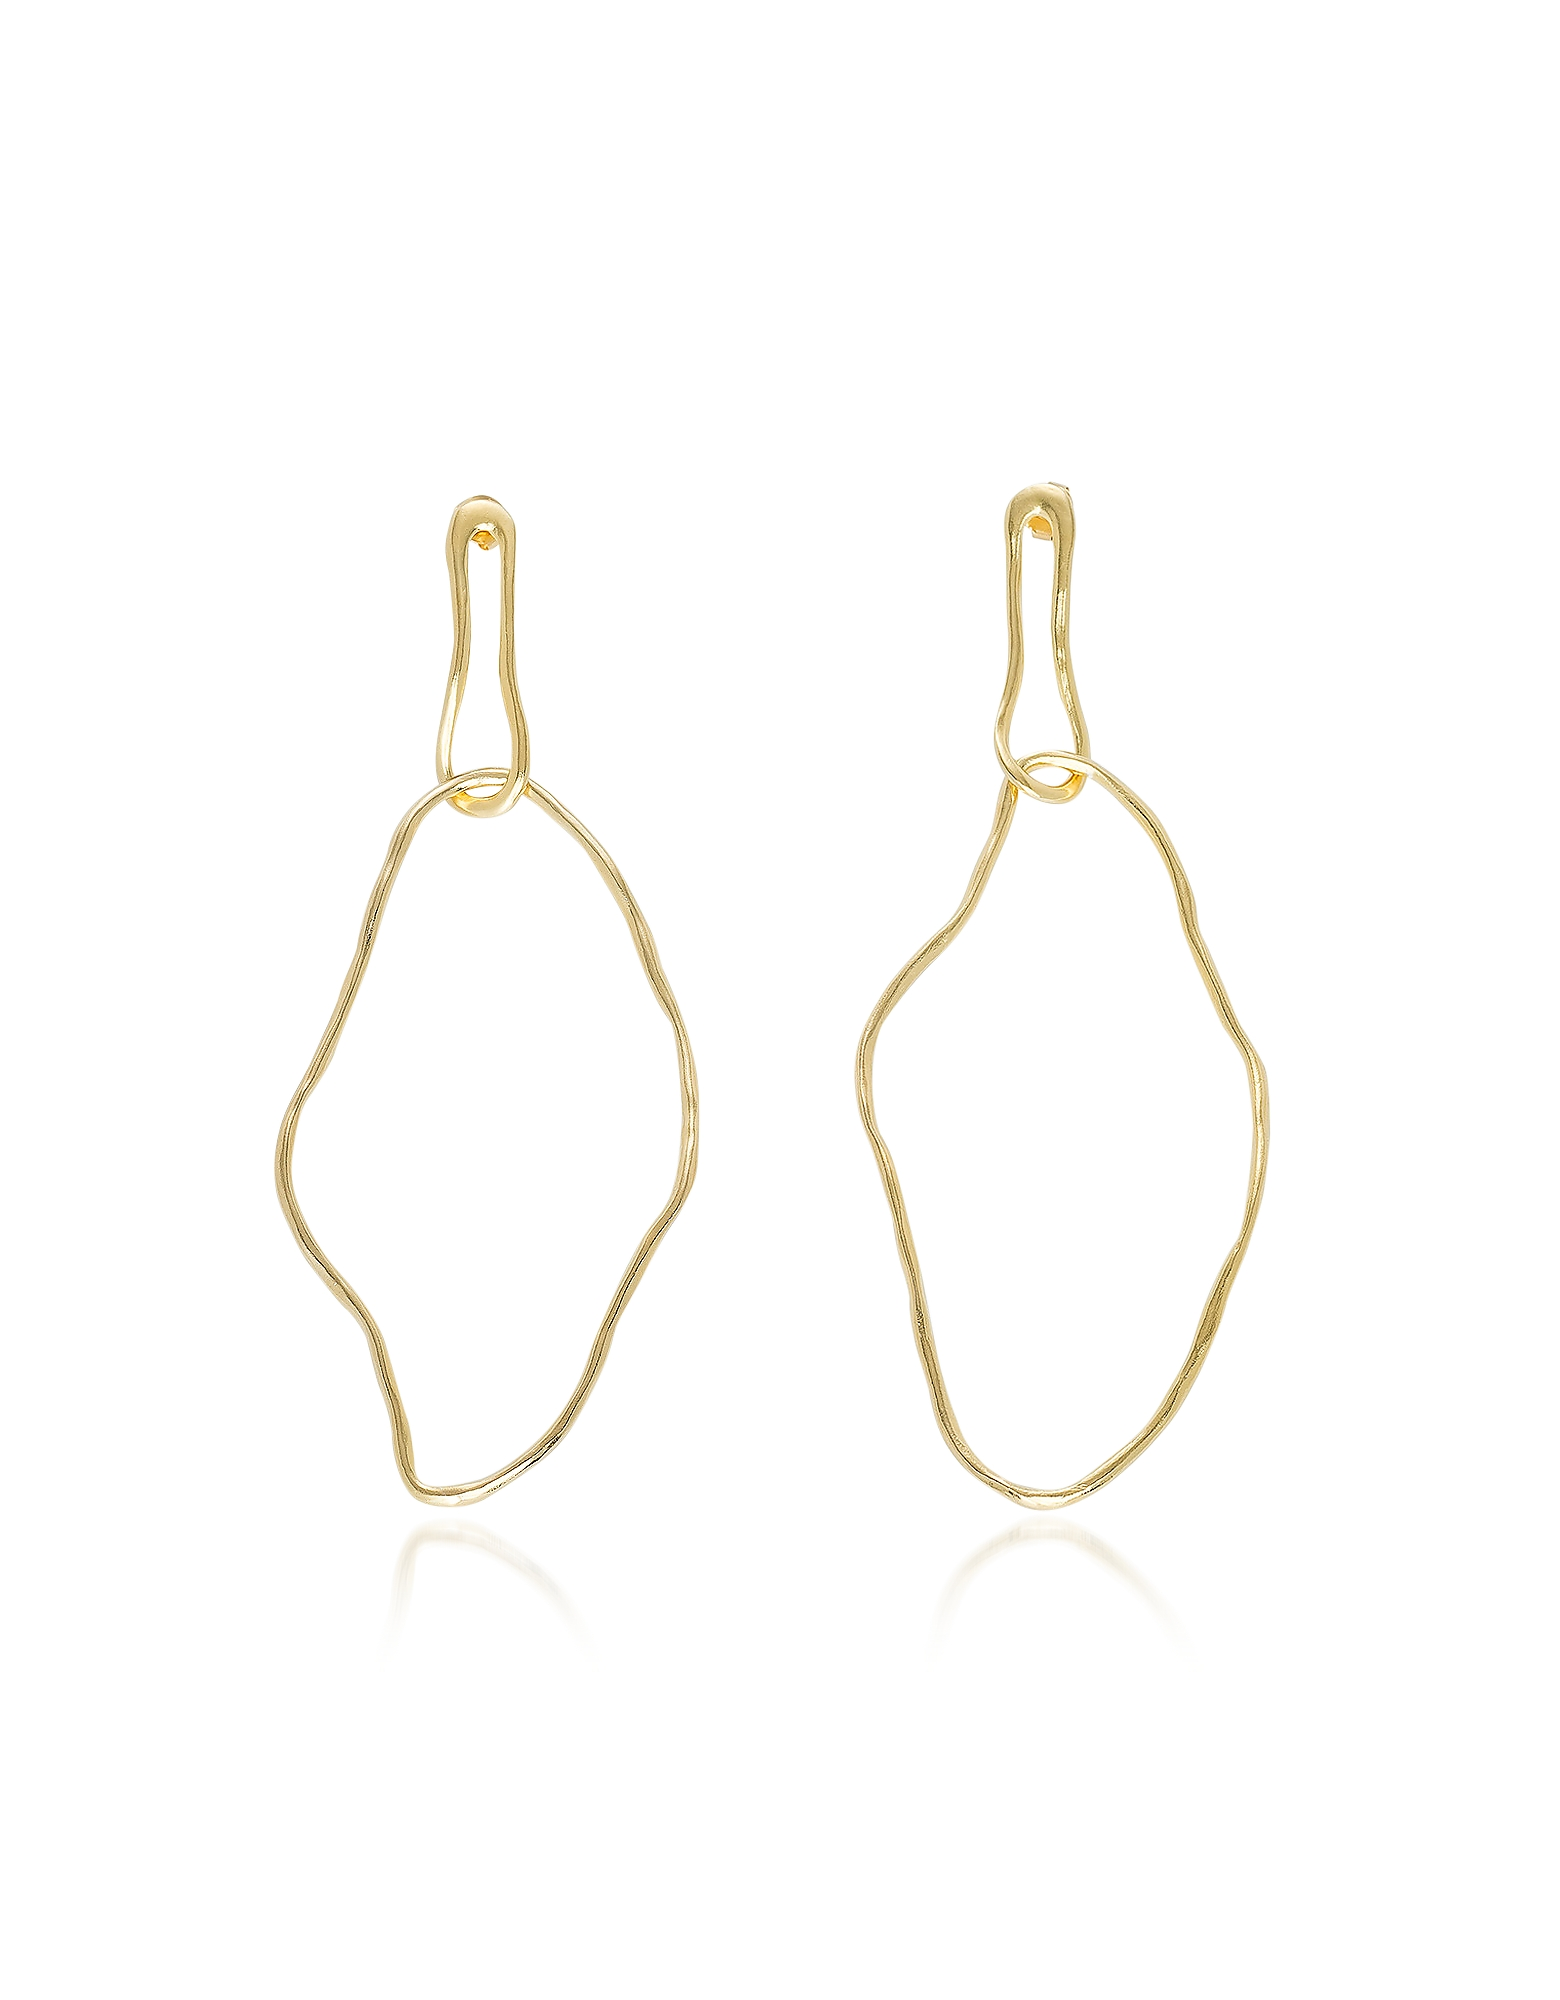 Bjorg Designer Earrings, Beauty Has Not Vanished Earrings